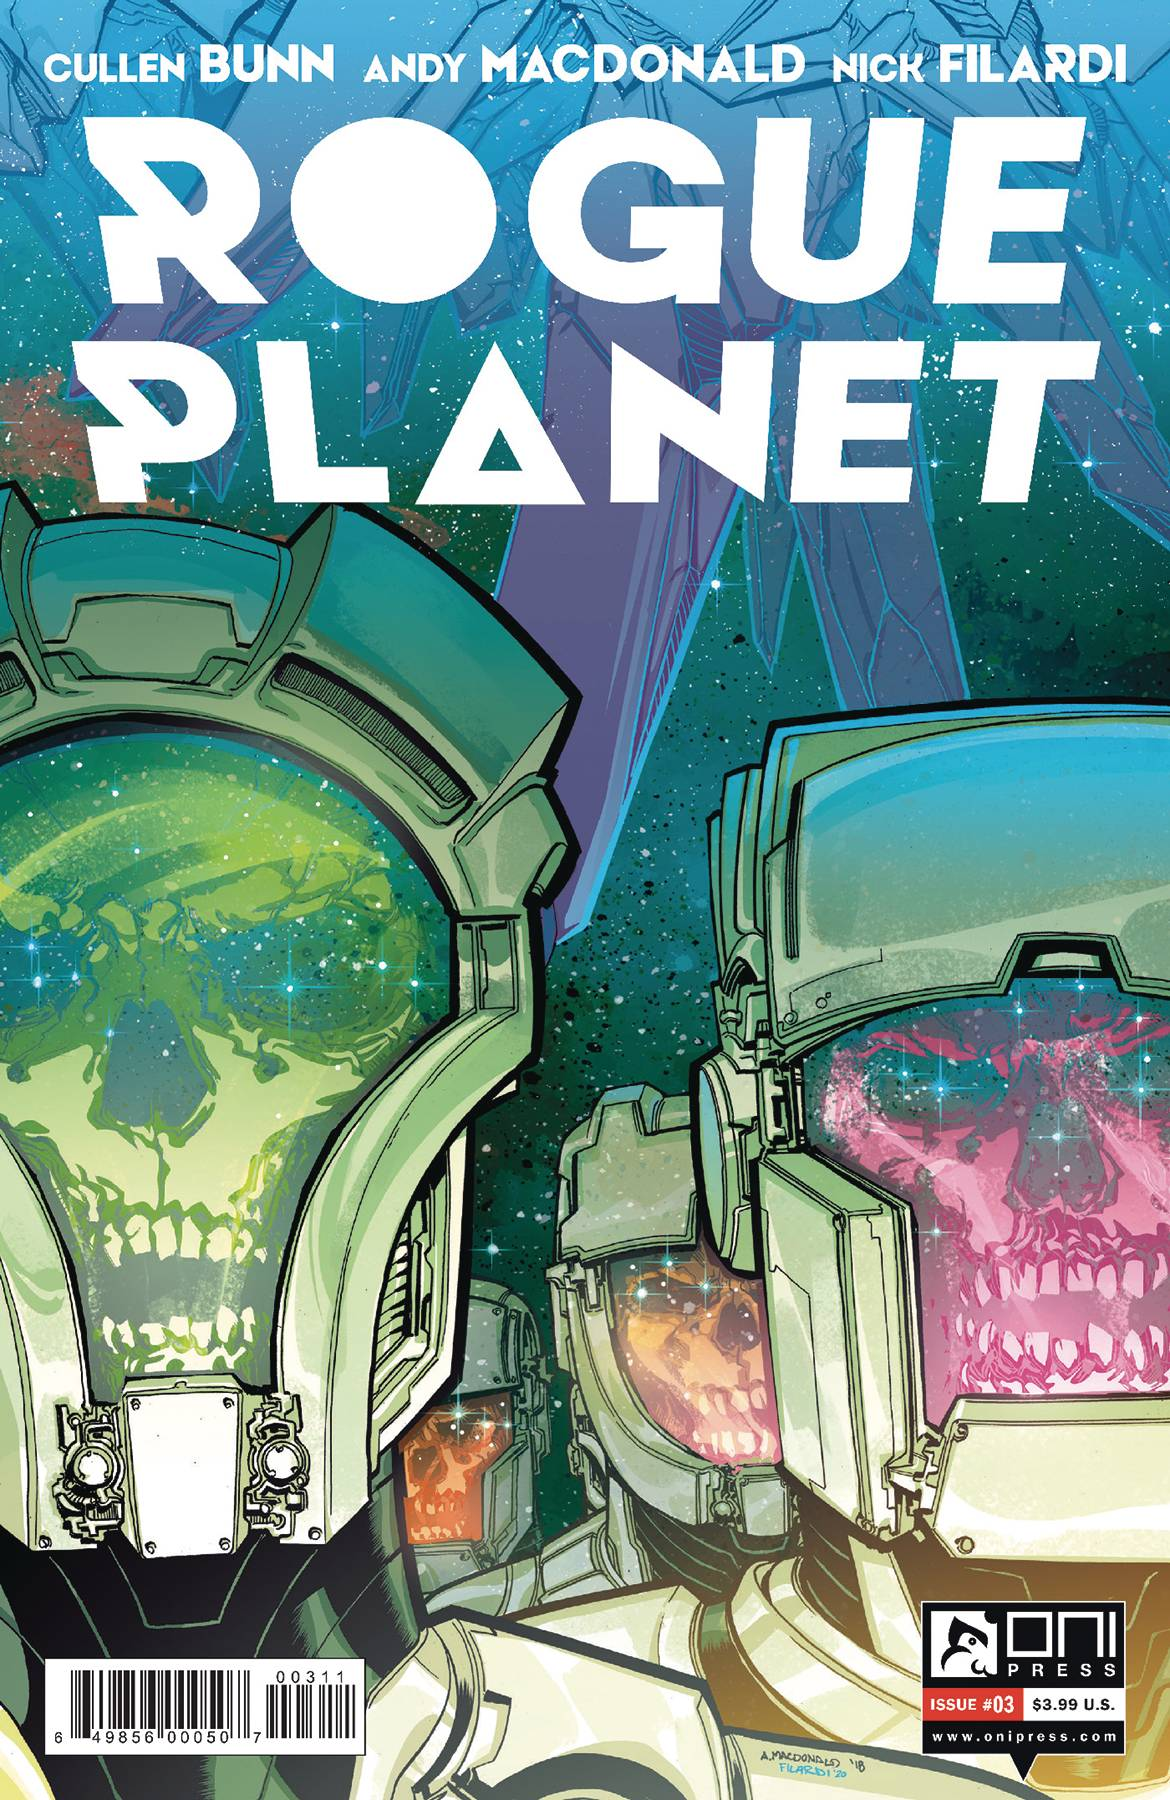 AVR201972 - ROGUE PLANET # 3 - Previews World